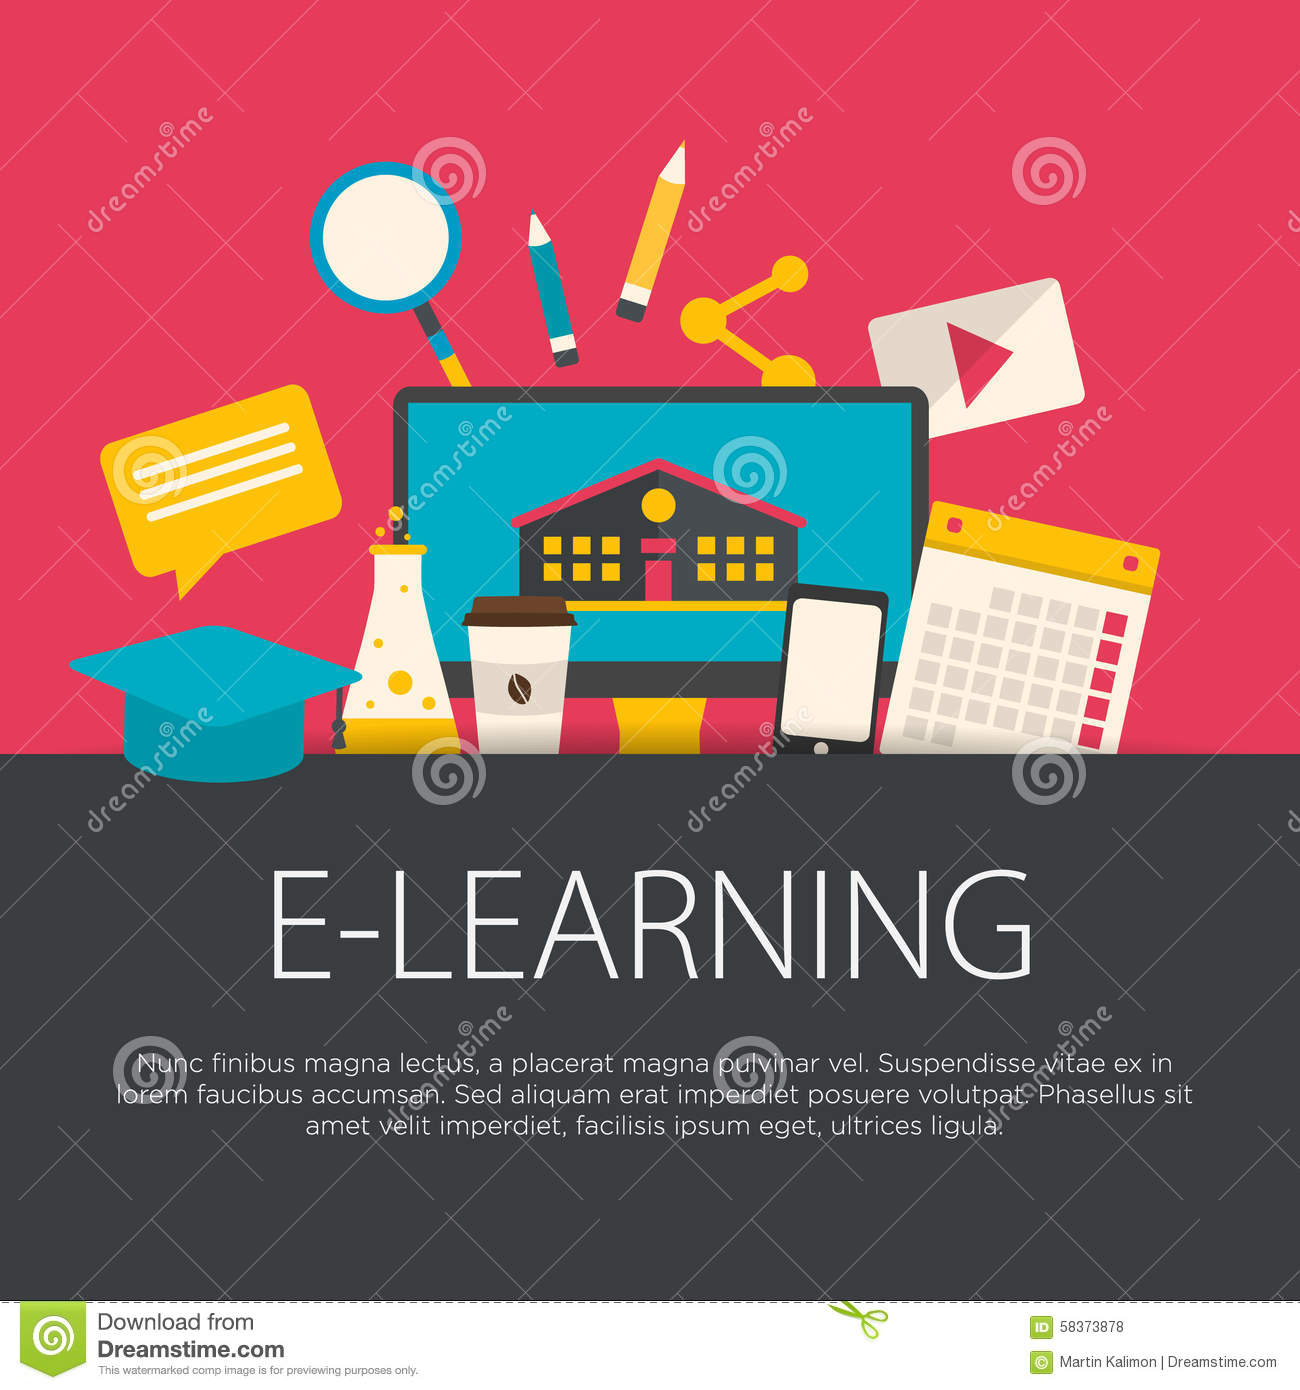 E learning poster designs - E Learning Poster Designs Flat Design E Learning Concept